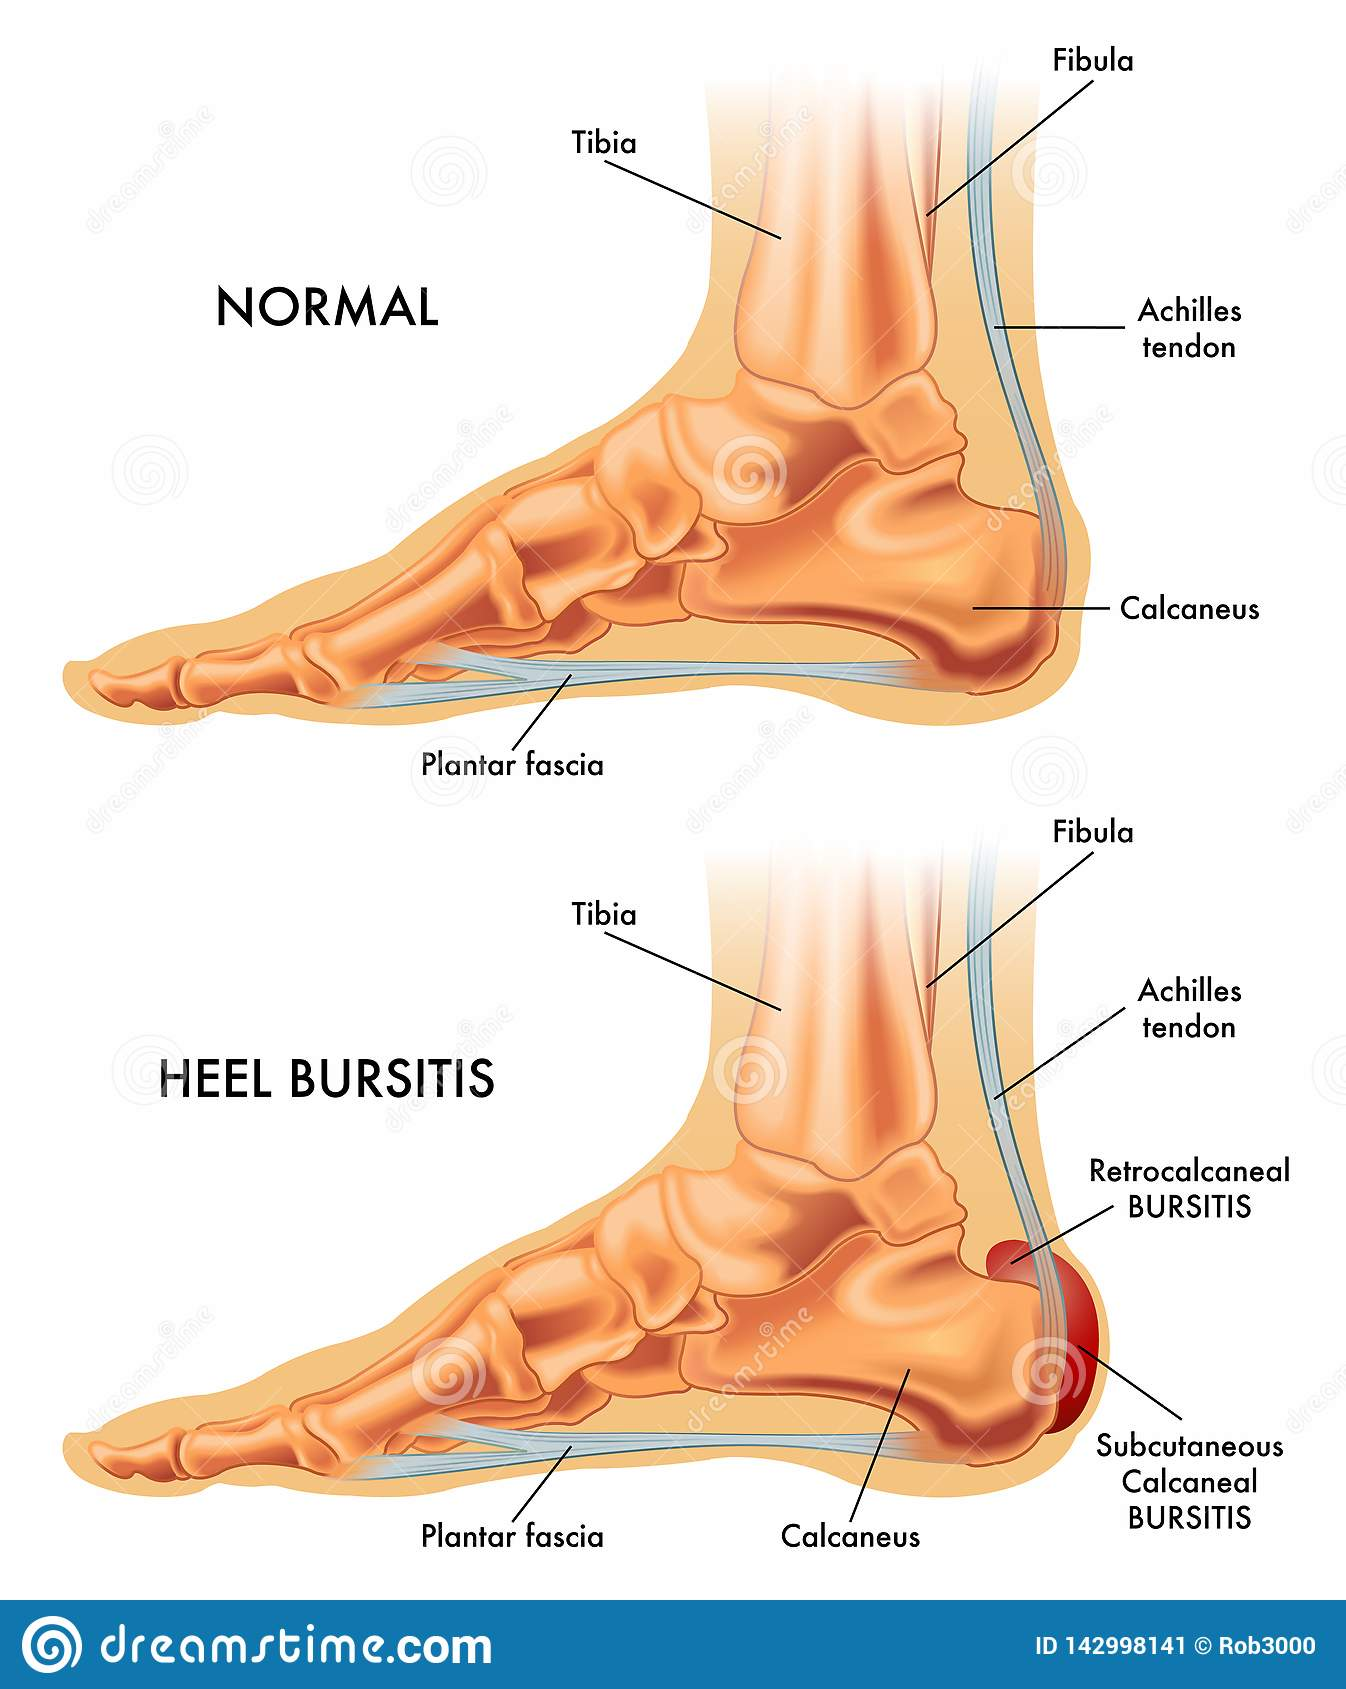 Heel bursitis illustration